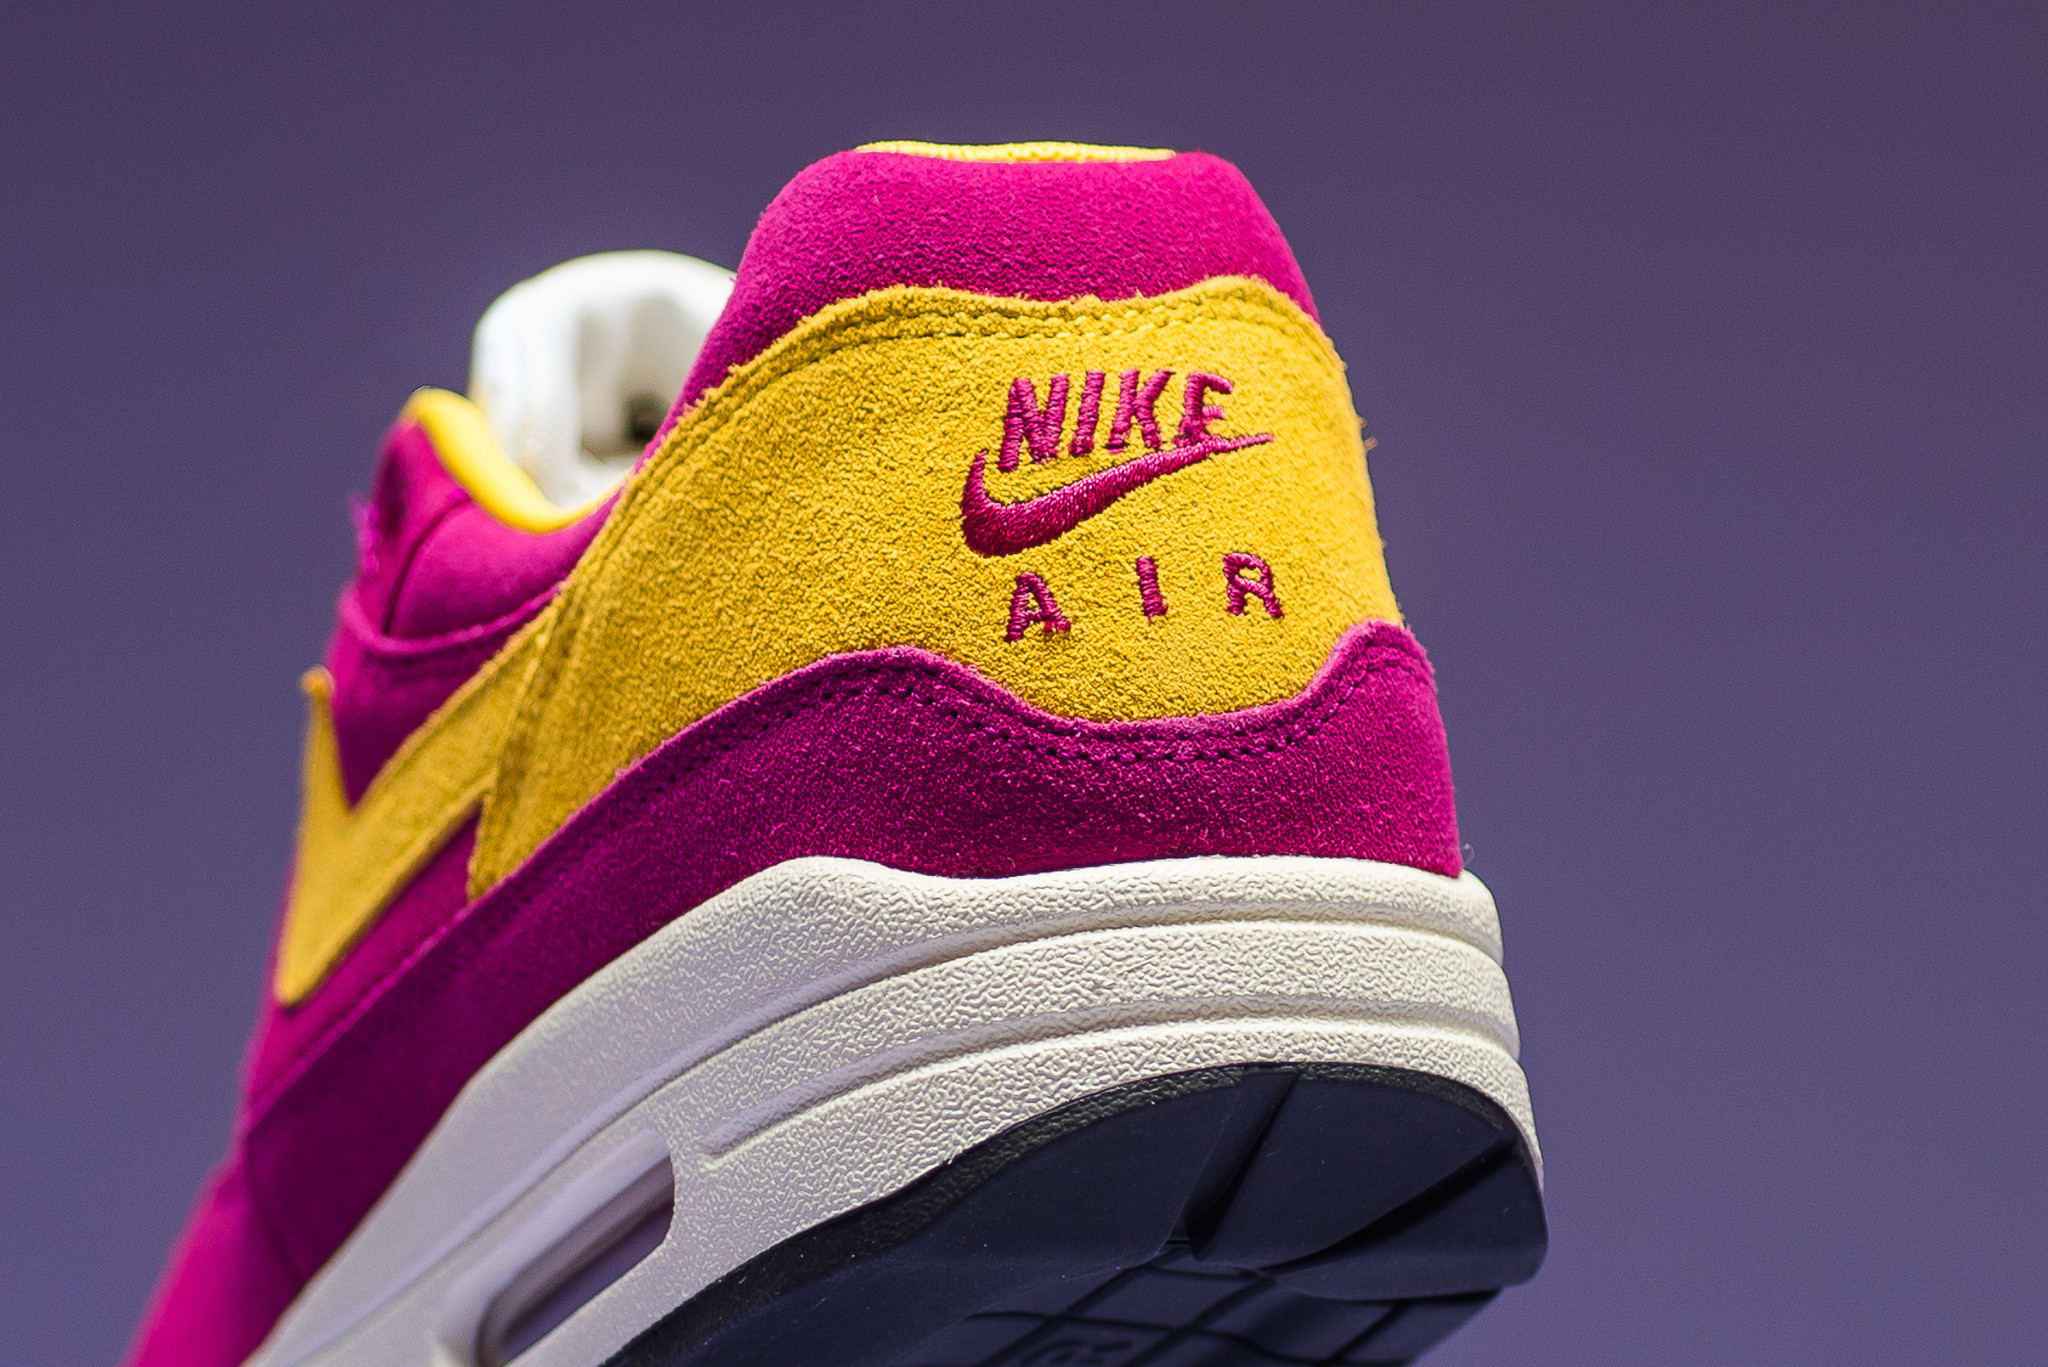 Nike Air Max 1 Dynamic Berry Vivid Sulfur | Sole Collector